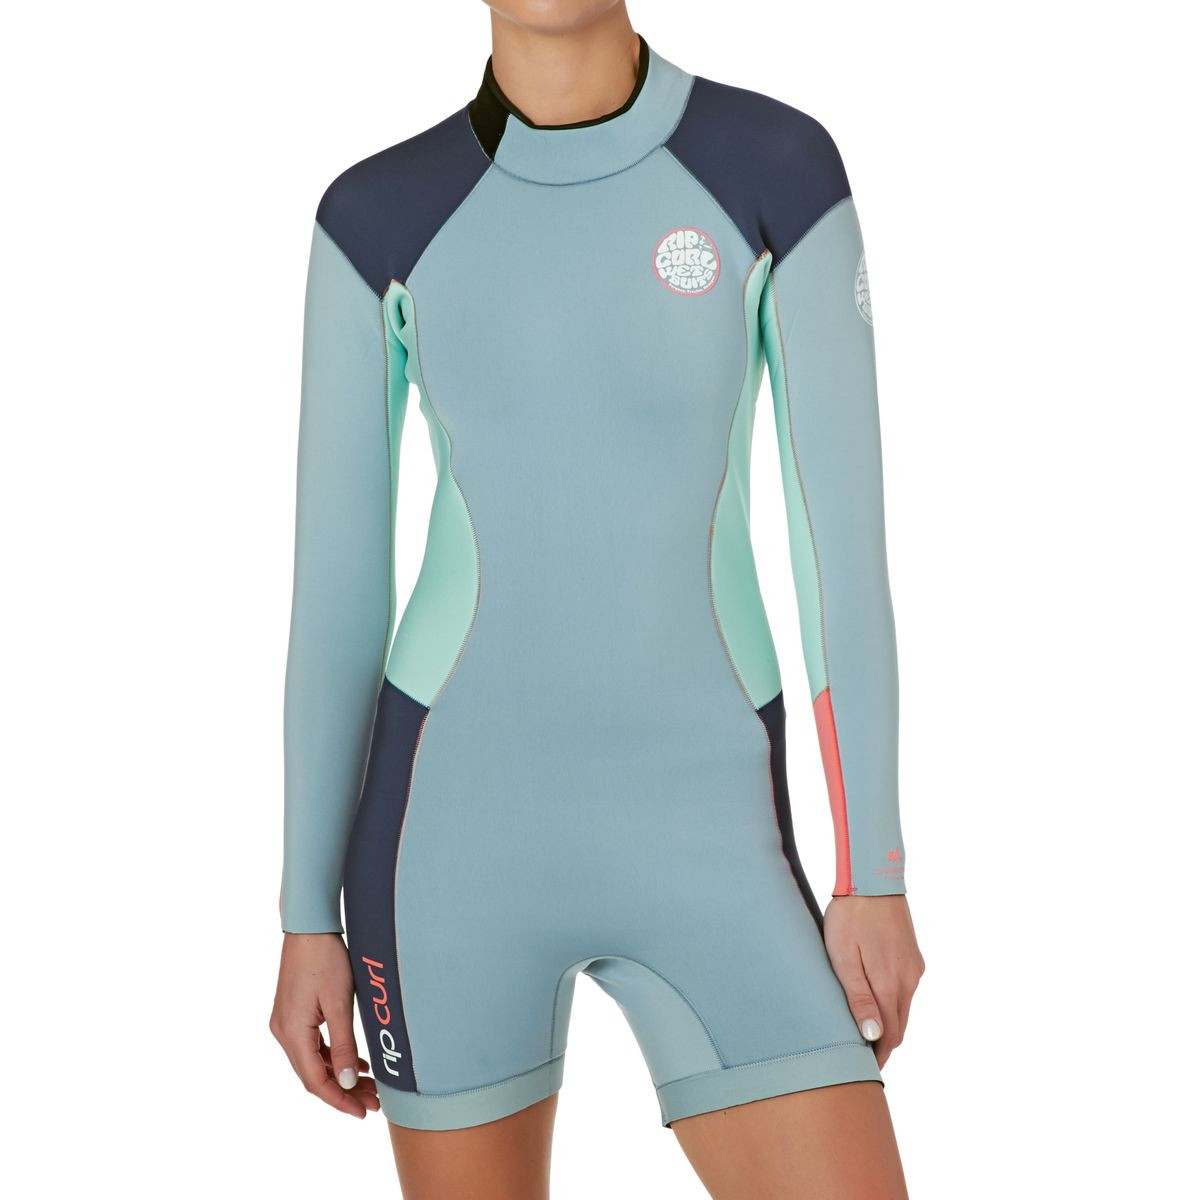 622a05dc27 Rip Curl Womens Dawn Patrol 2mm Back Zip Long Sleeve Shorty Wetsuit - Blue  Ice